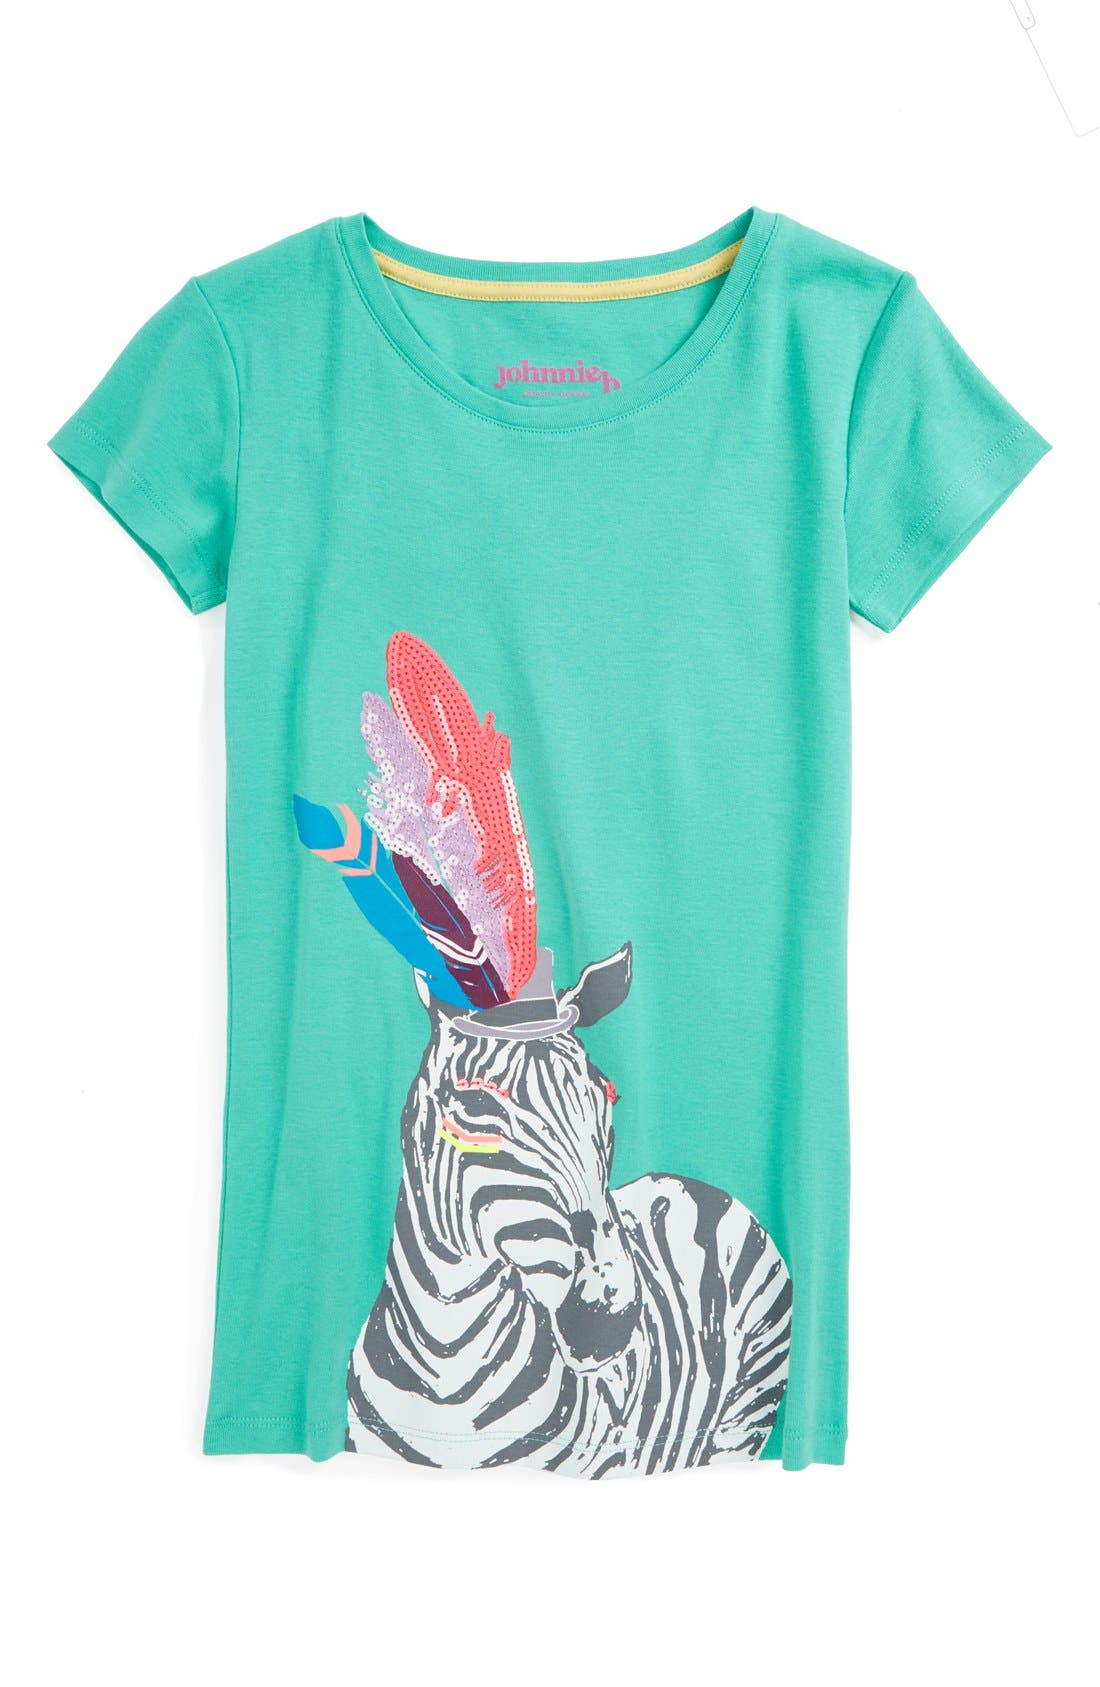 Alternate Image 1 Selected - Johnnie B by Boden Embellished Graphic Tee (Big Girls)